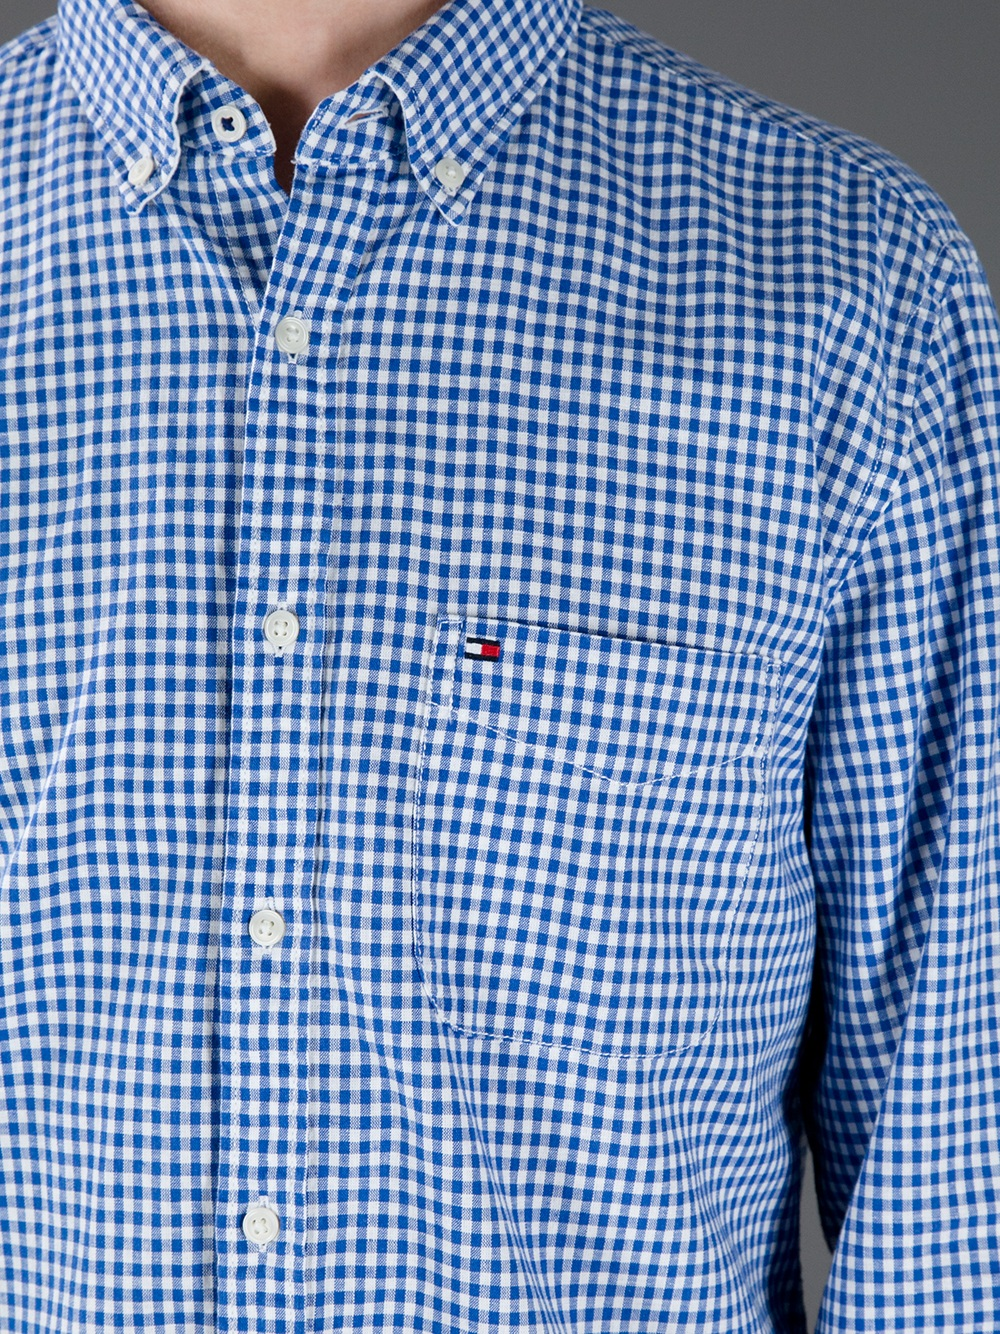 Tommy hilfiger gingham shirt in blue for men lyst for Mens blue gingham shirt